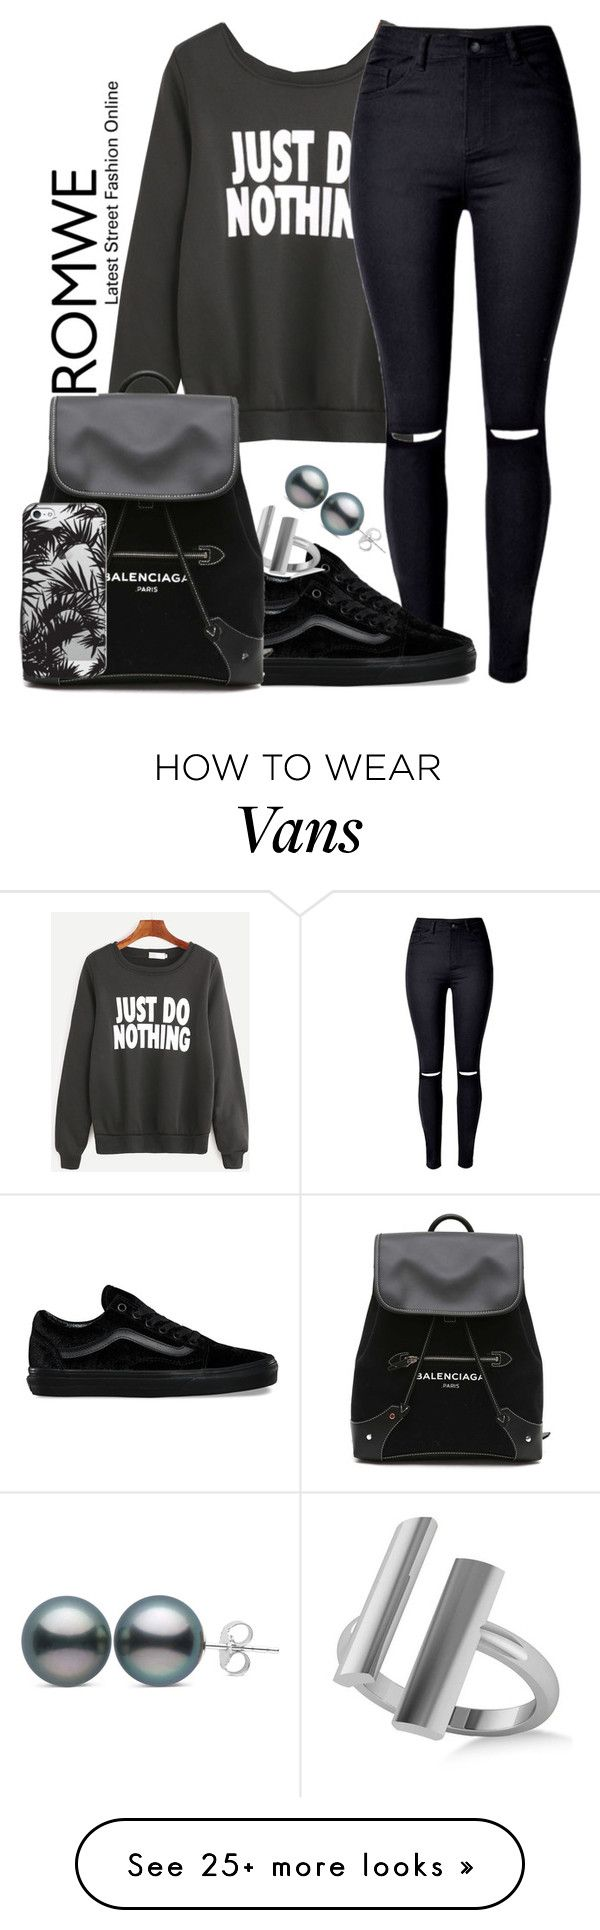 """""""Untitled #904"""" by amazing-crazy-love on Polyvore featuring WithChic, Vans, Allurez, Balenciaga and Casetify"""